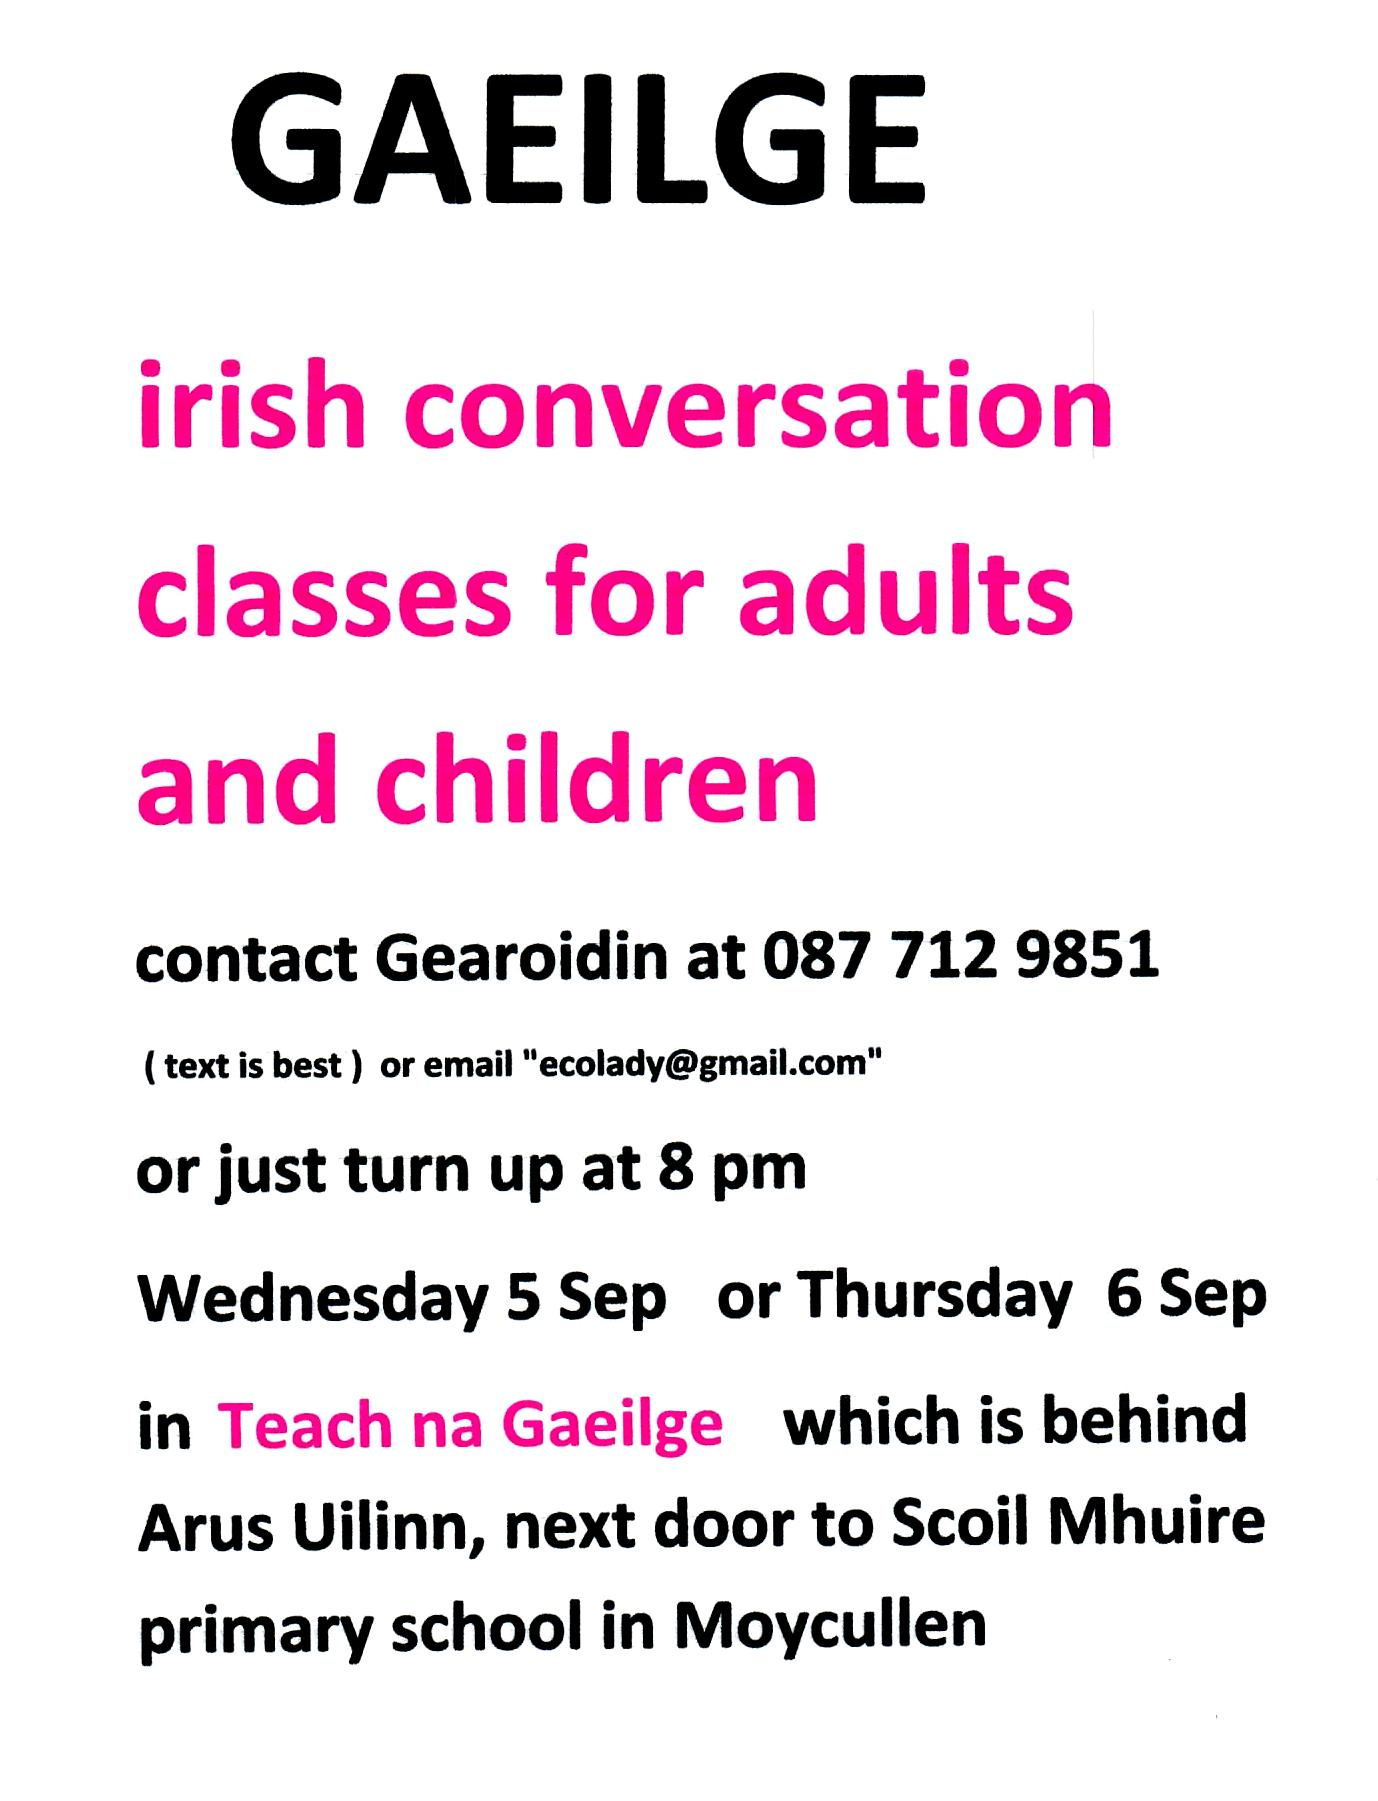 Irish conversation classes for adults and children in Moycullen. Contact Gearóidín at 087 7129851